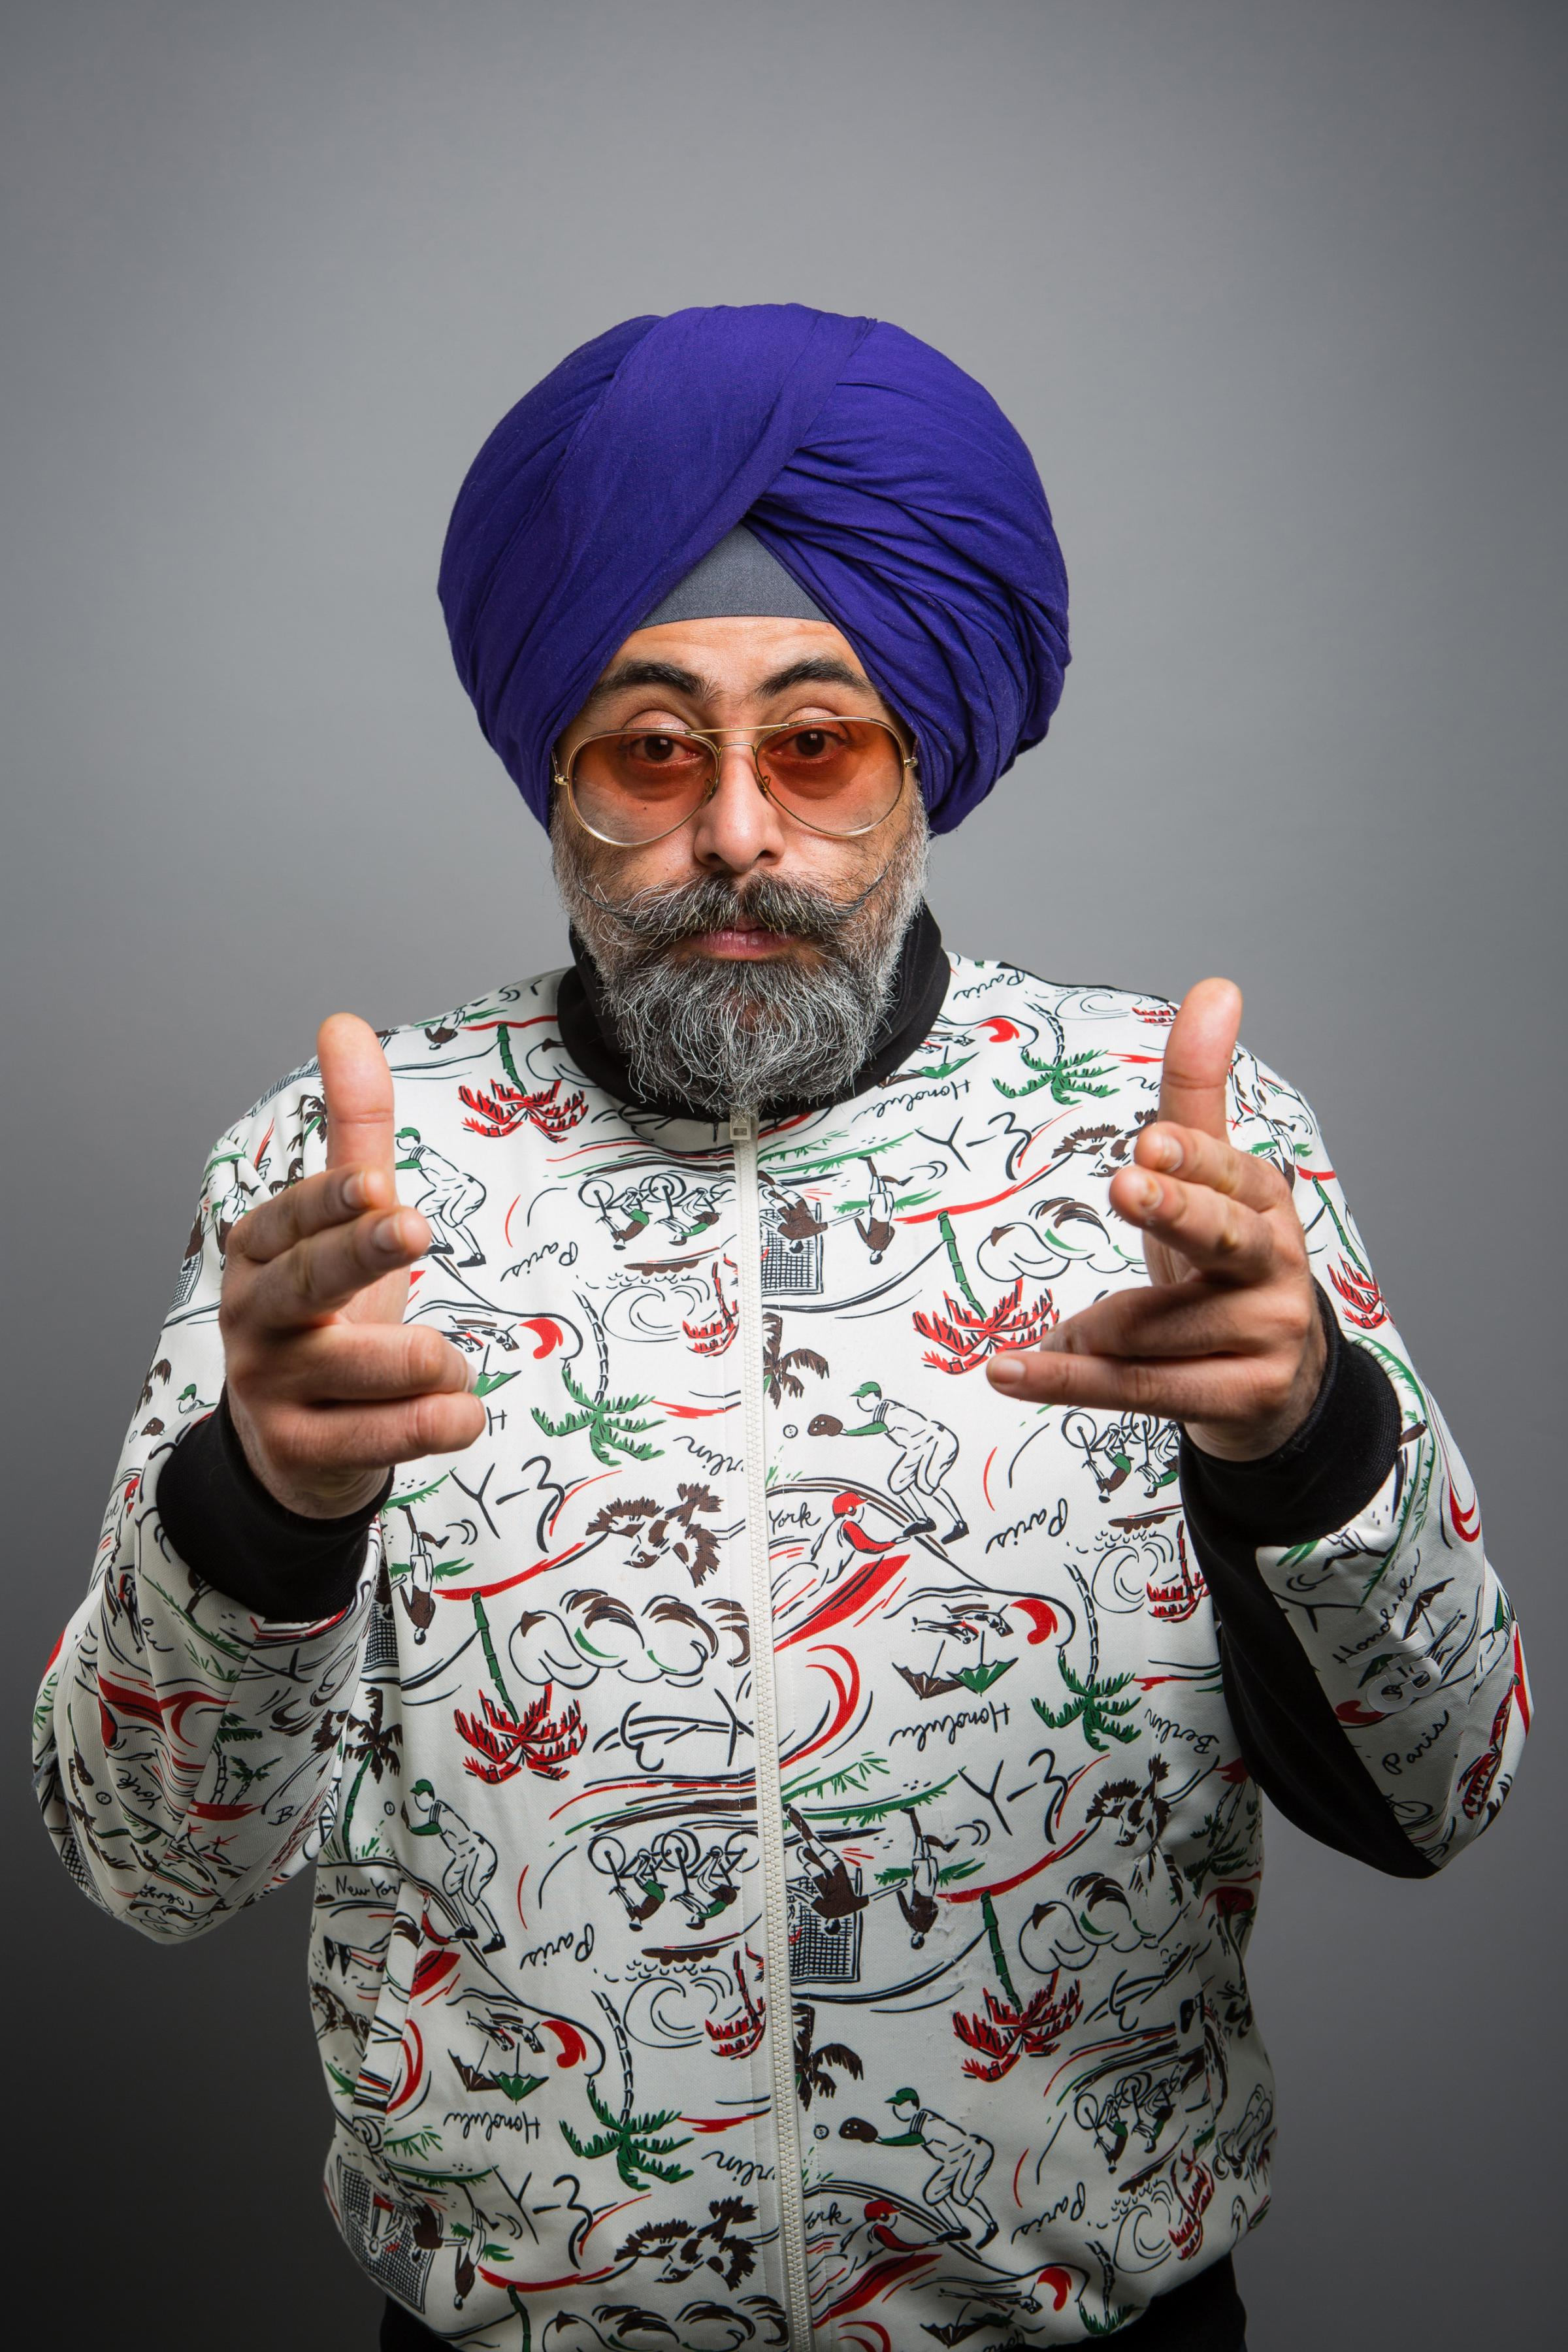 SHOW: Hardeep Singh Kohli is bringing his Mix Tape to The Met